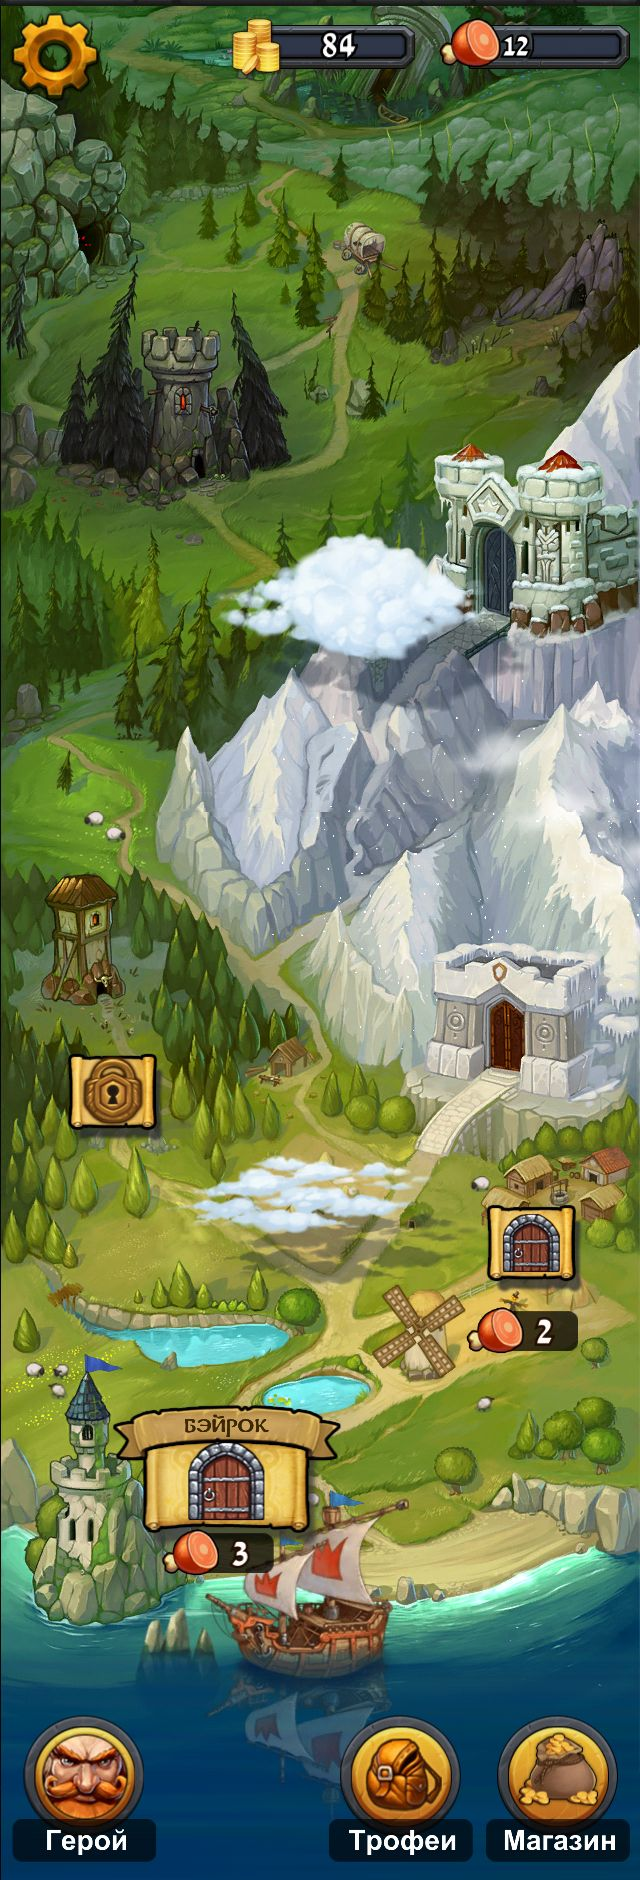 game map    Read more on mobile app development from our blog: https://play.google.com/store/apps/details?id=com.webprogr.chessrajaeurope